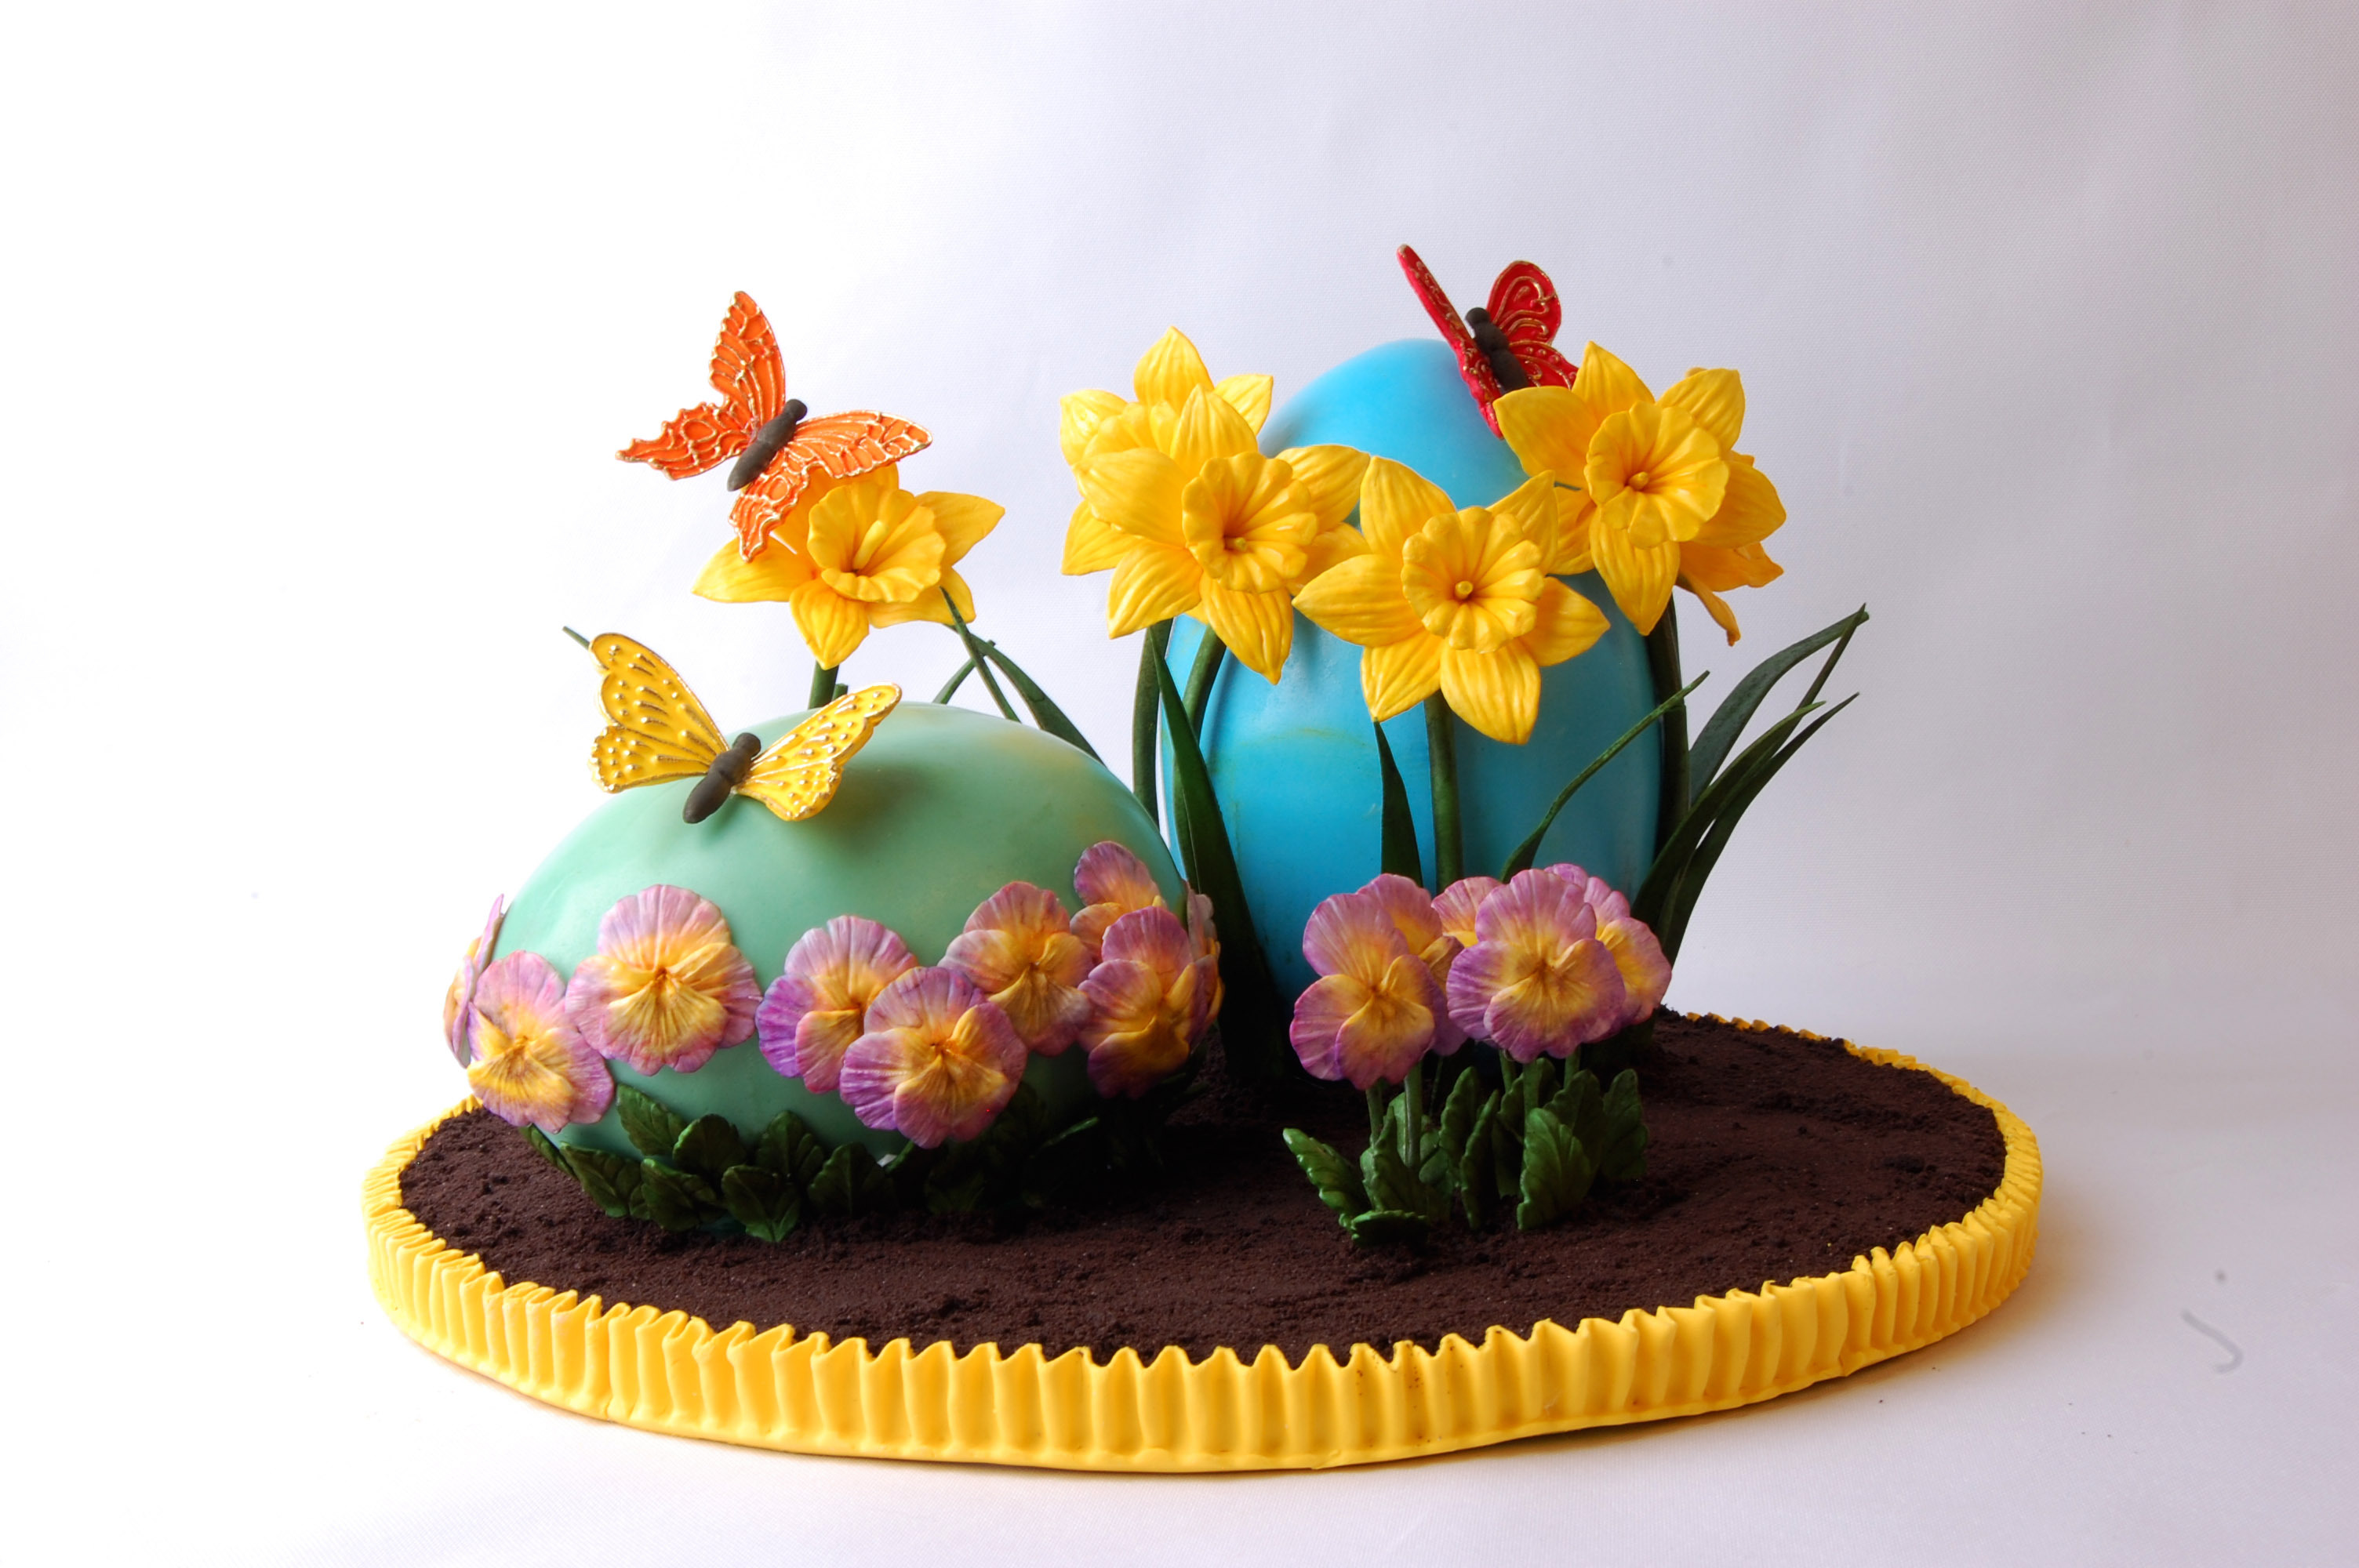 Choco Pan Gum Paste Gilles Leblanc Of Les Gateaux De Gilles Seasonal 1